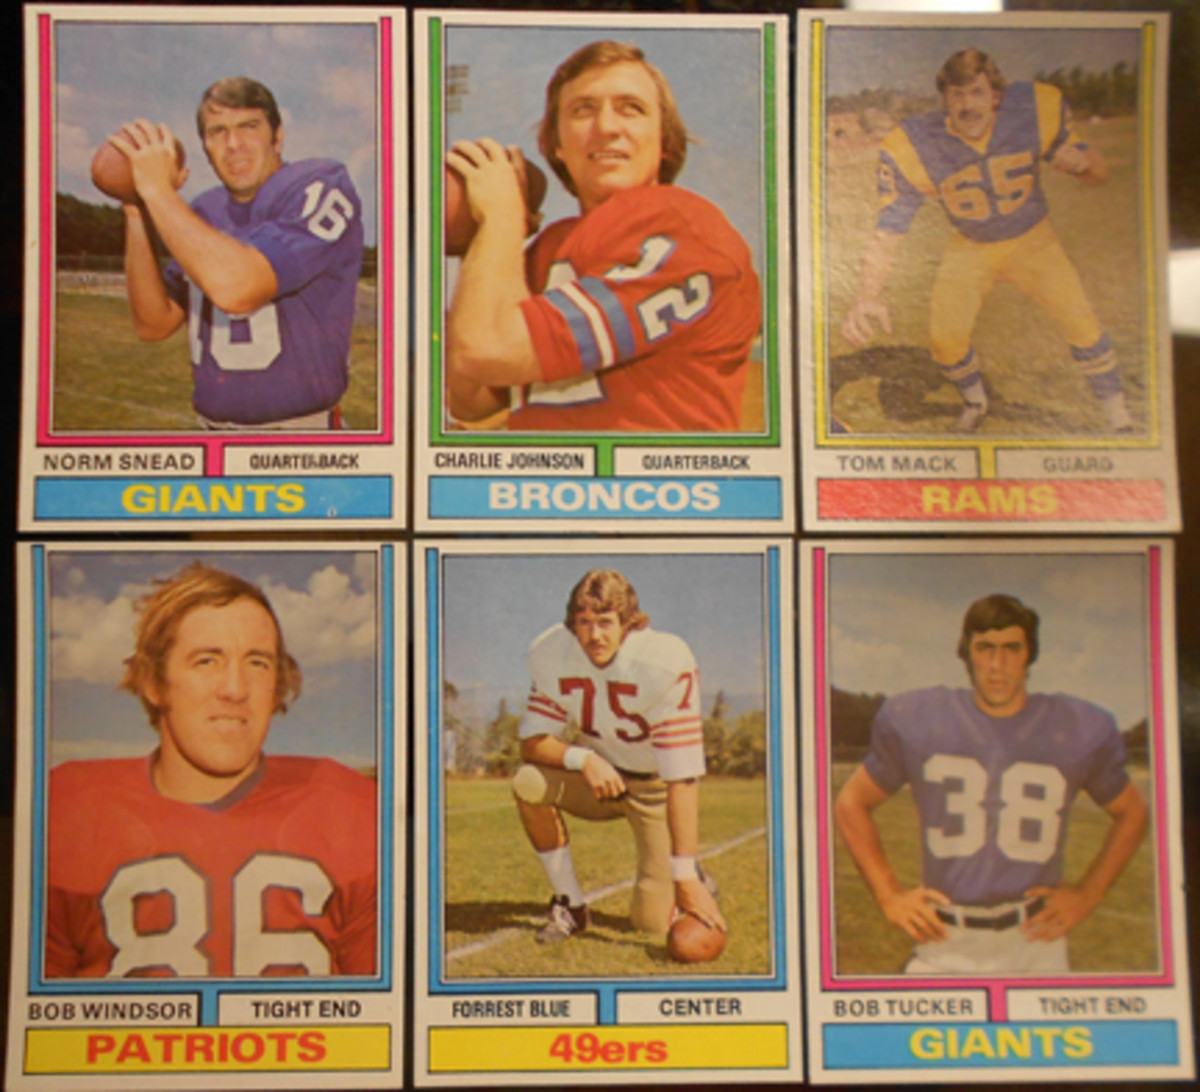 These six card front variations are the most instantly recognizable 1974 Topps Parker Brothers cards, thanks to vertical vs. horizontal layouts and the lack of All-Pro designations. The Forrest Blue cards below highlight one of the differences.